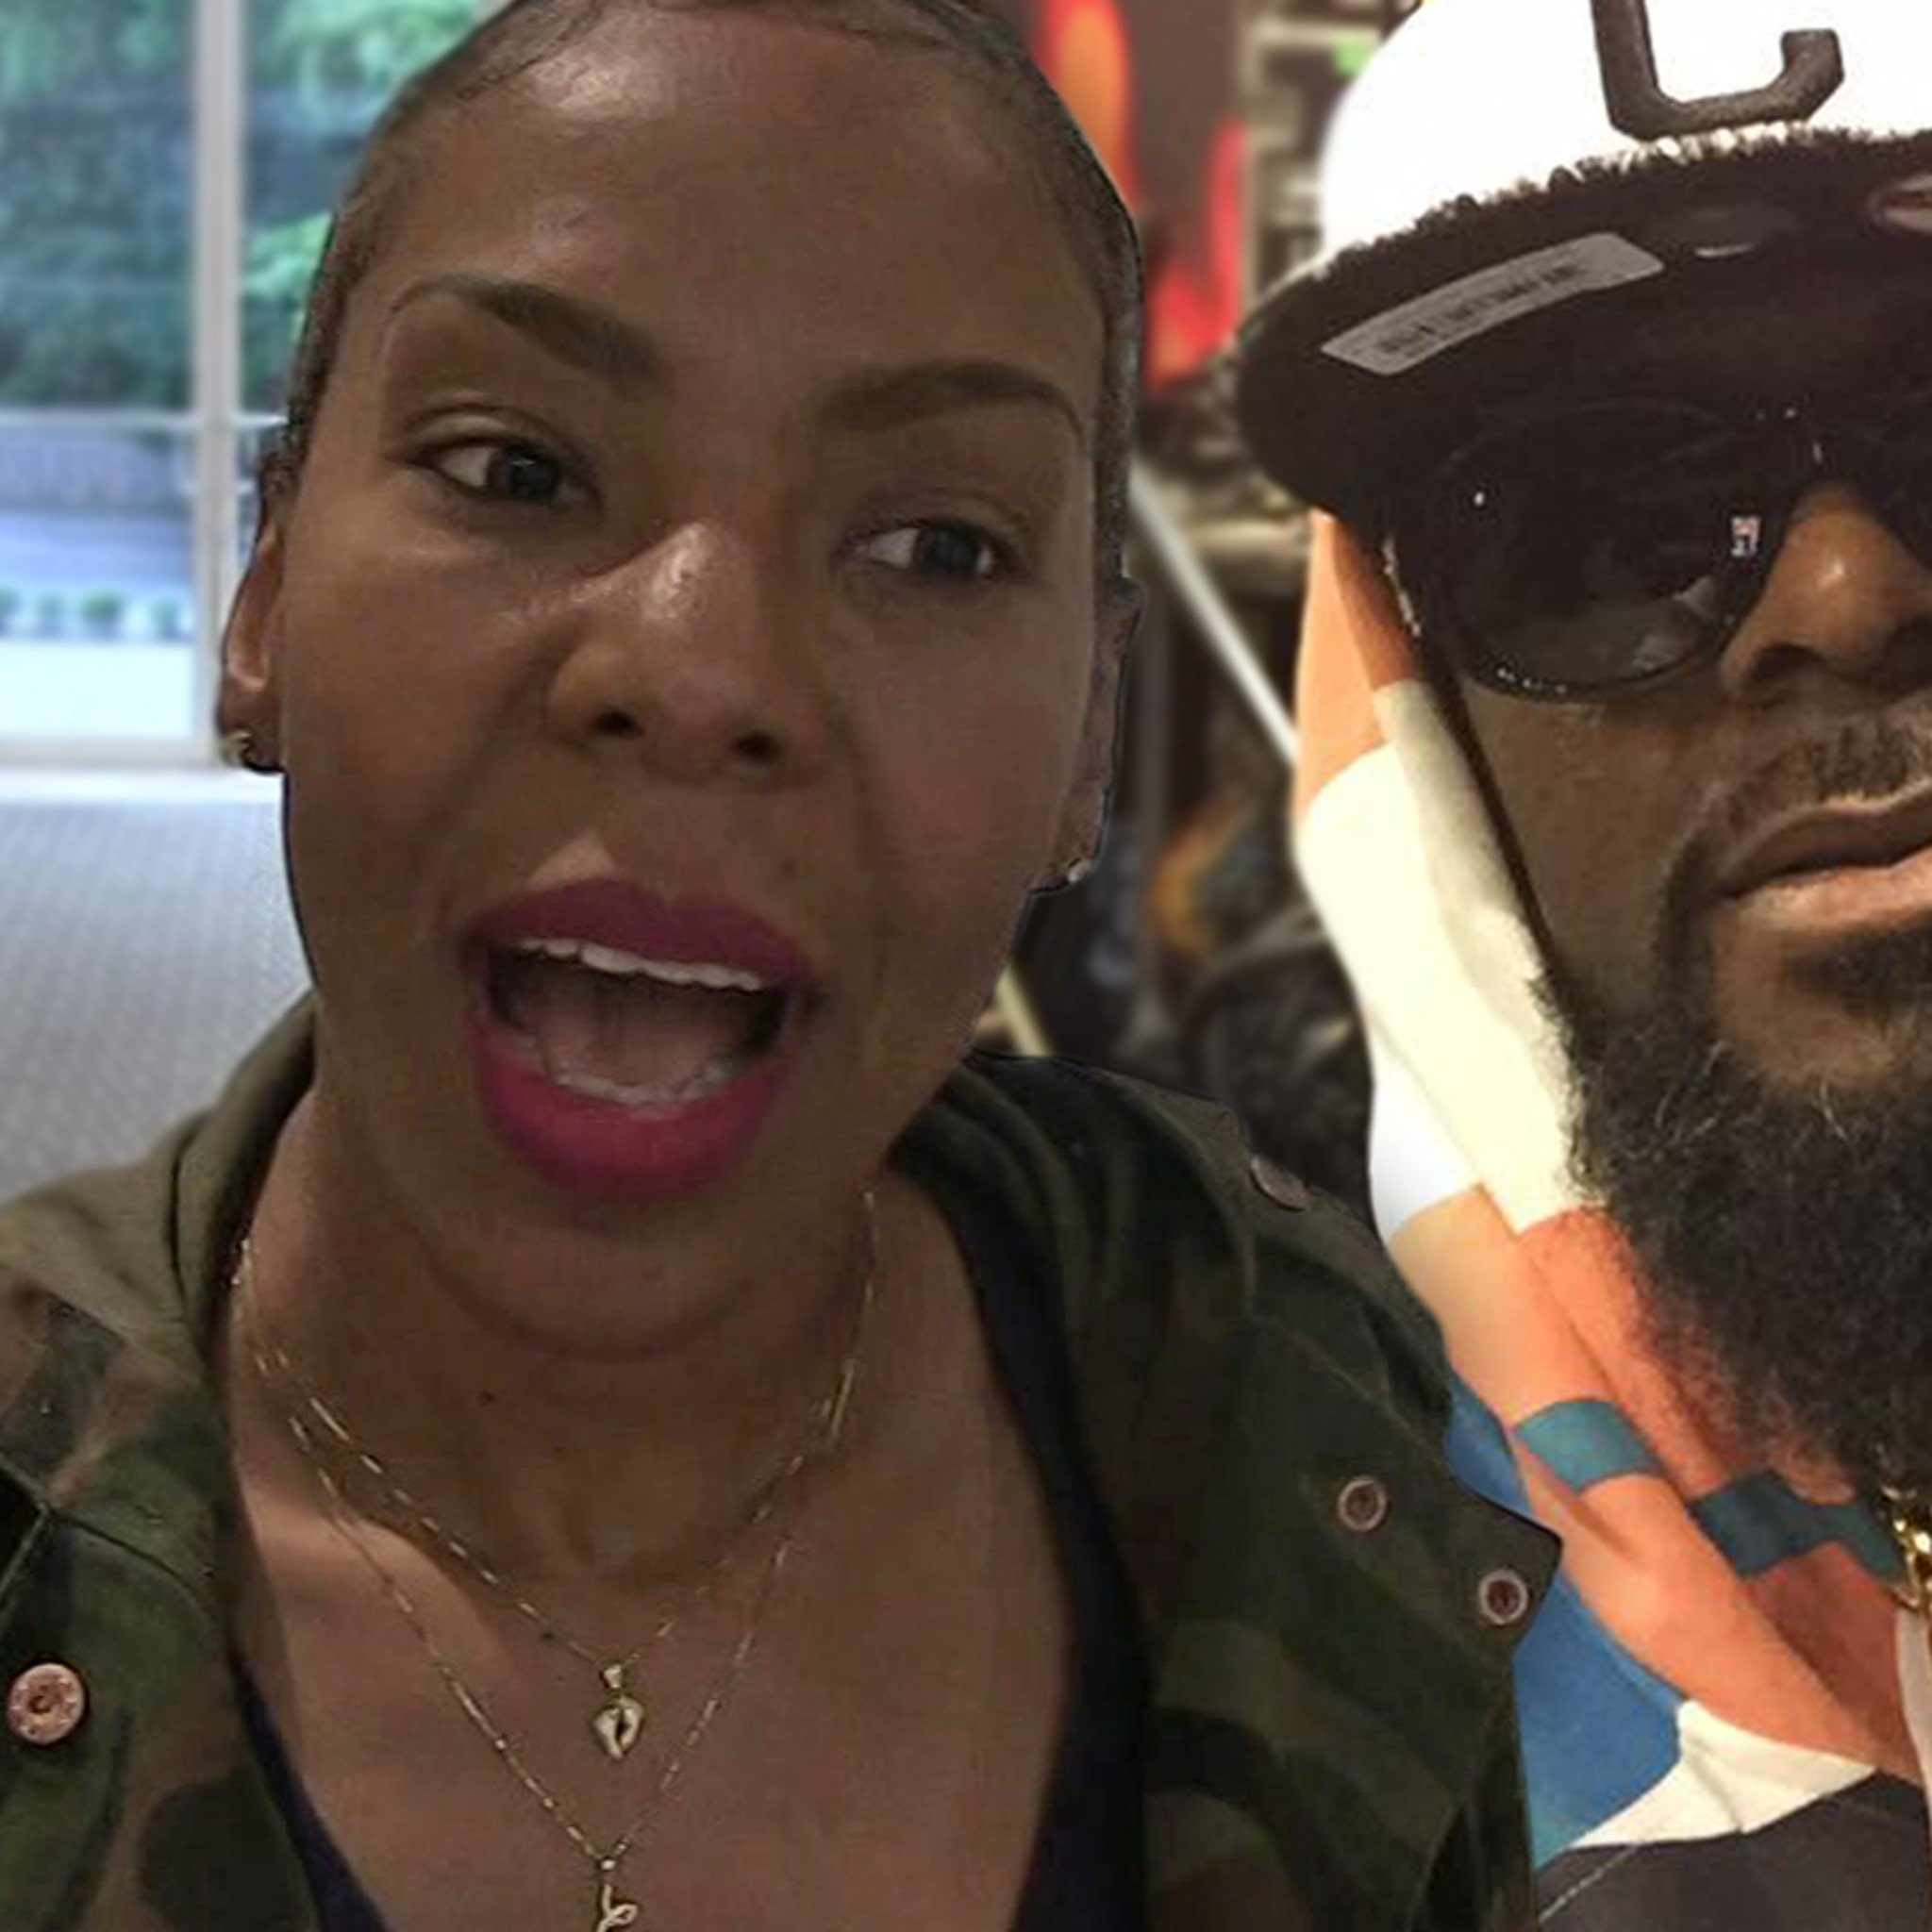 R. Kelly's Ex Drea Not In 'Surviving Part II' Despite Misleading Promo